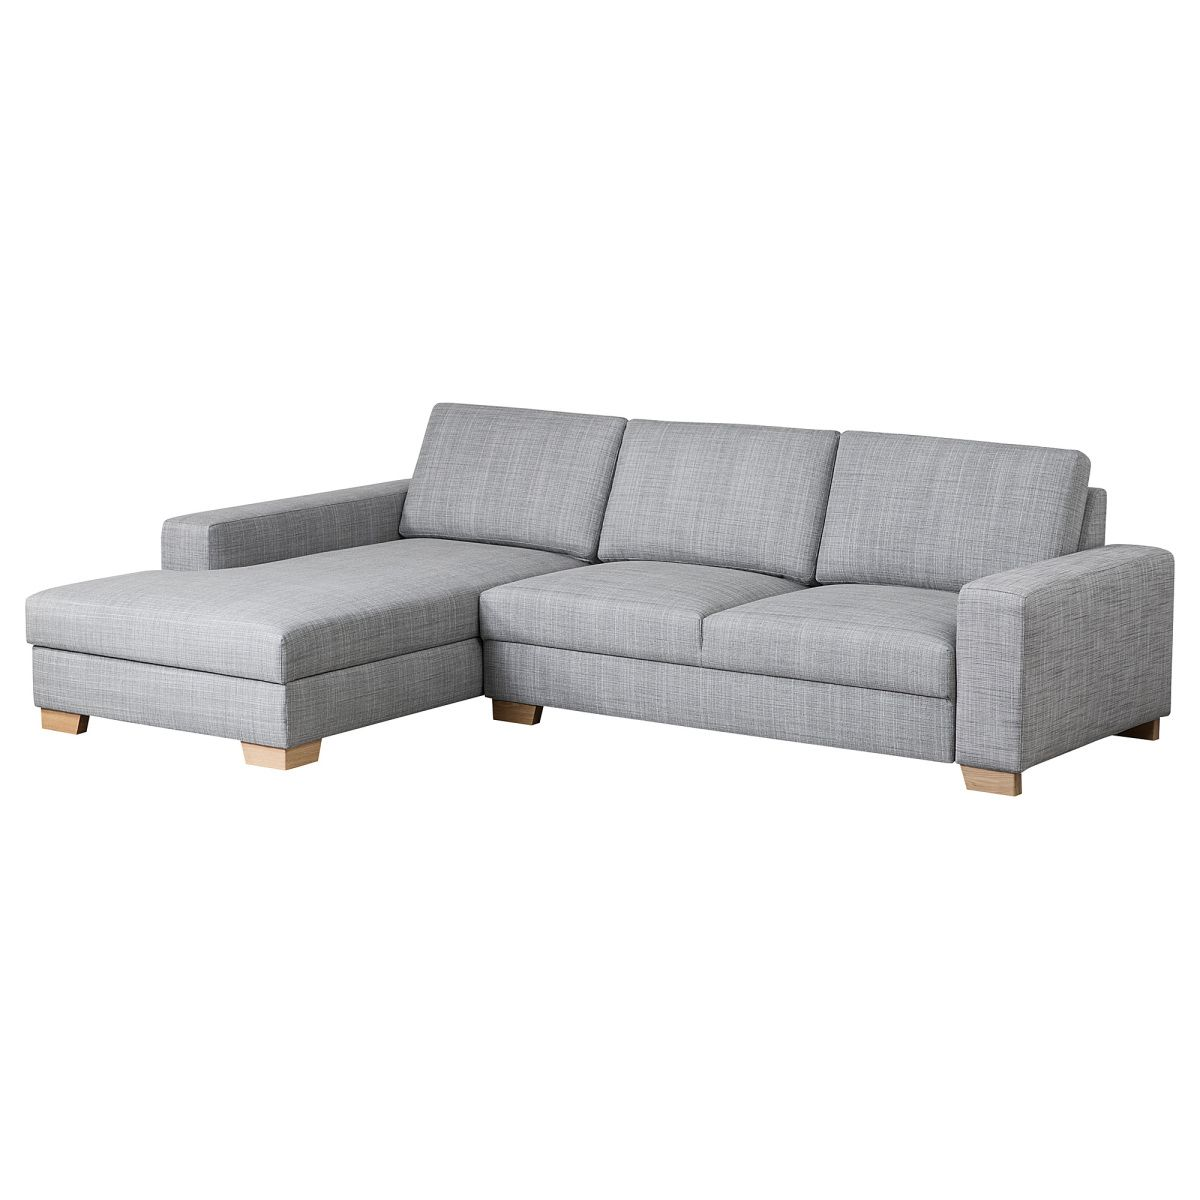 s rvallen 2er sofa mit r camiere links isunda grau grau jetzt bestellen unter https moebel. Black Bedroom Furniture Sets. Home Design Ideas